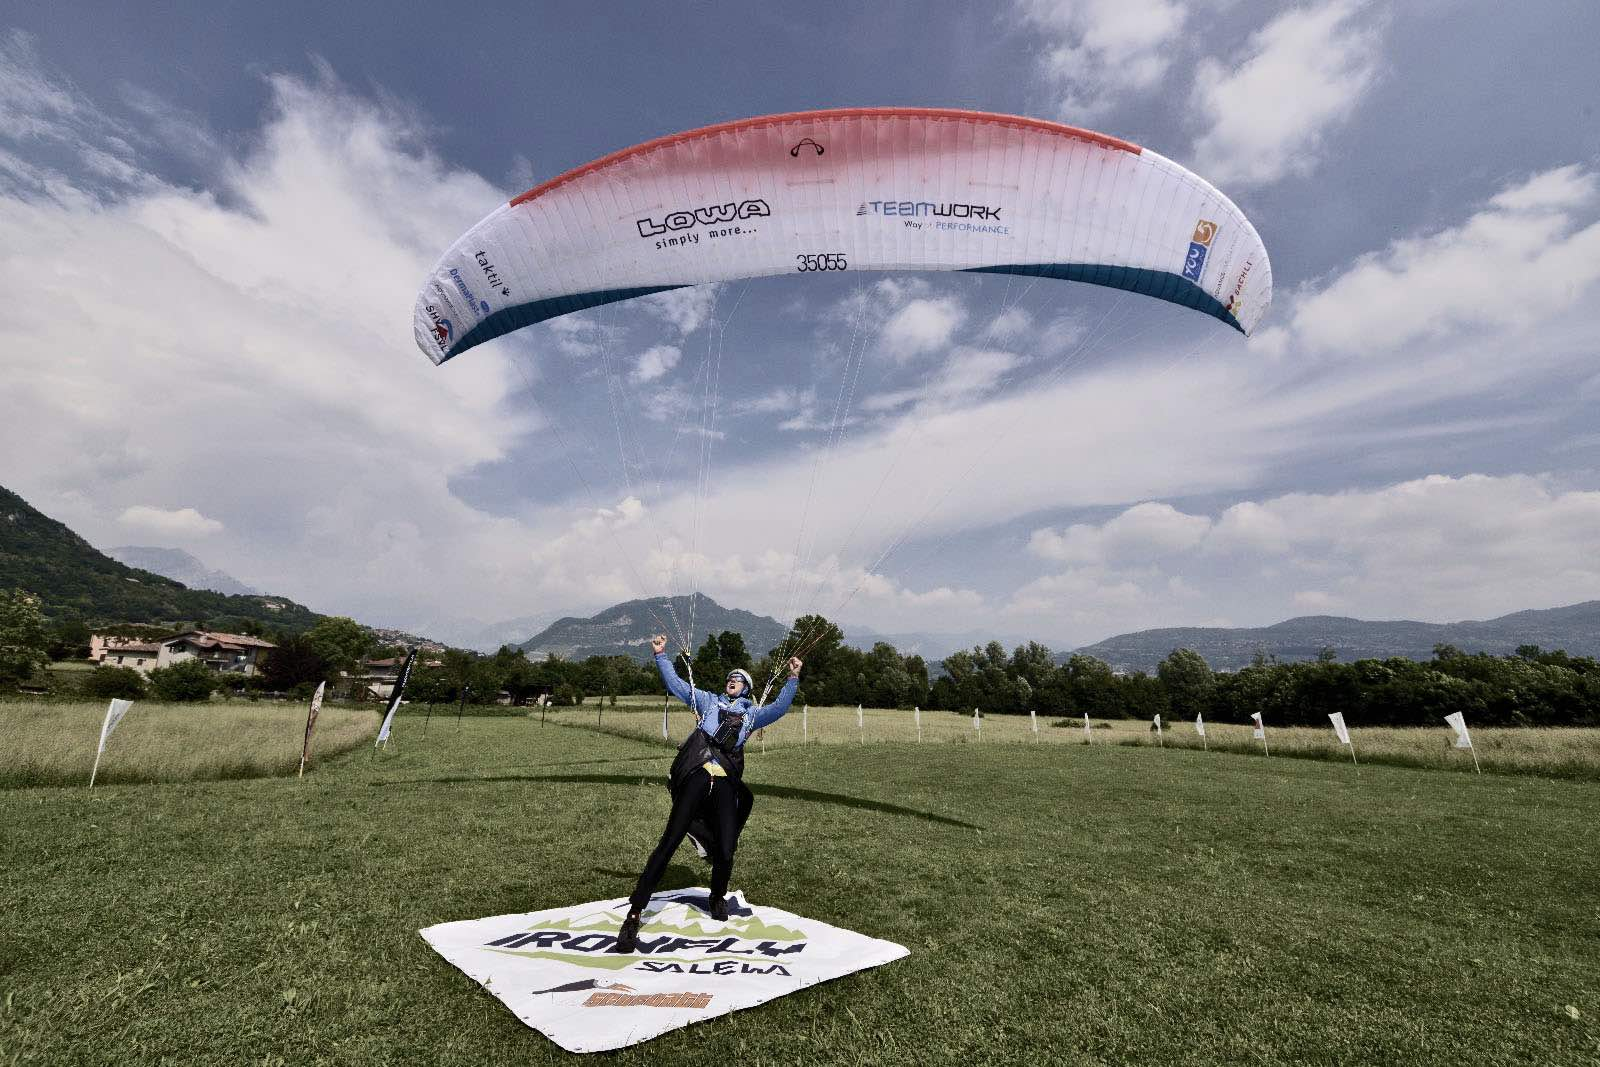 Classifica Salewa IronFly: Chrigel Maurer vince la prima edizione